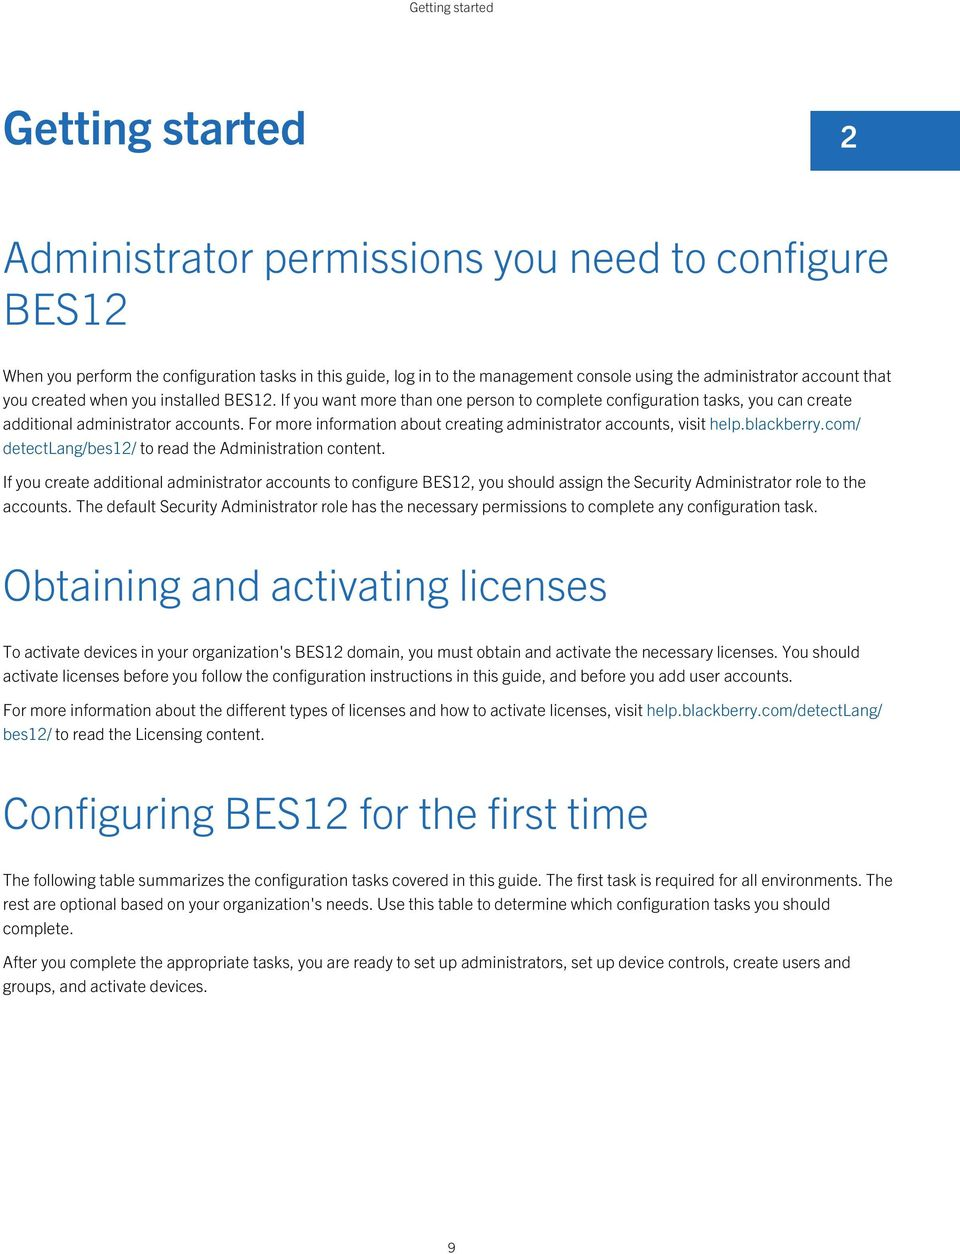 For more information about creating administrator accounts, visit help.blackberry.com/ detectlang/bes12/ to read the Administration content.